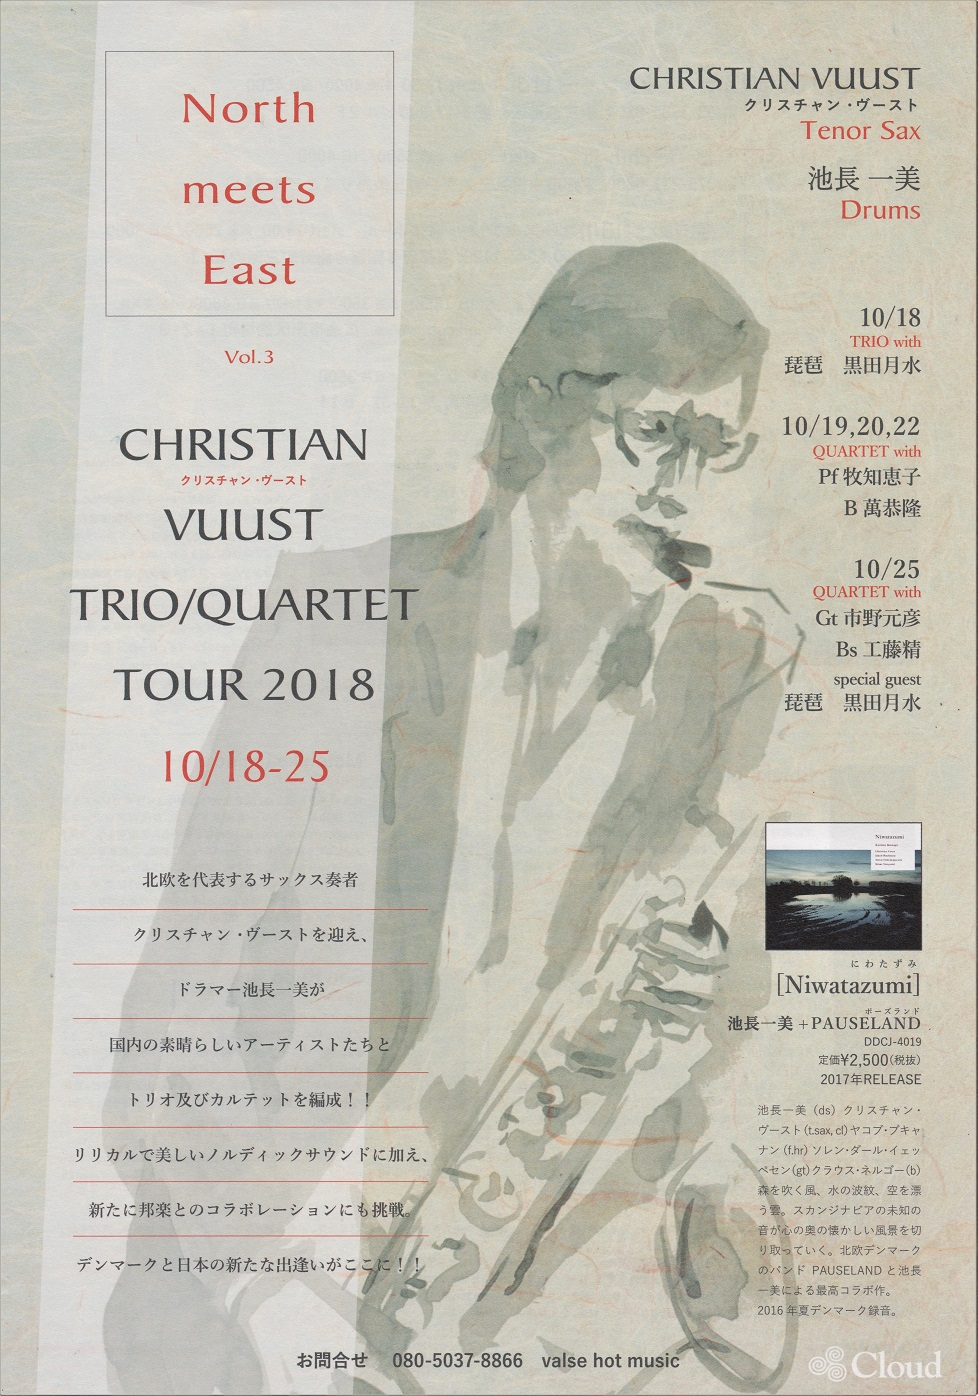 CHRISTIAN VUUST  TRIO/QUARTET  TOUR  2018